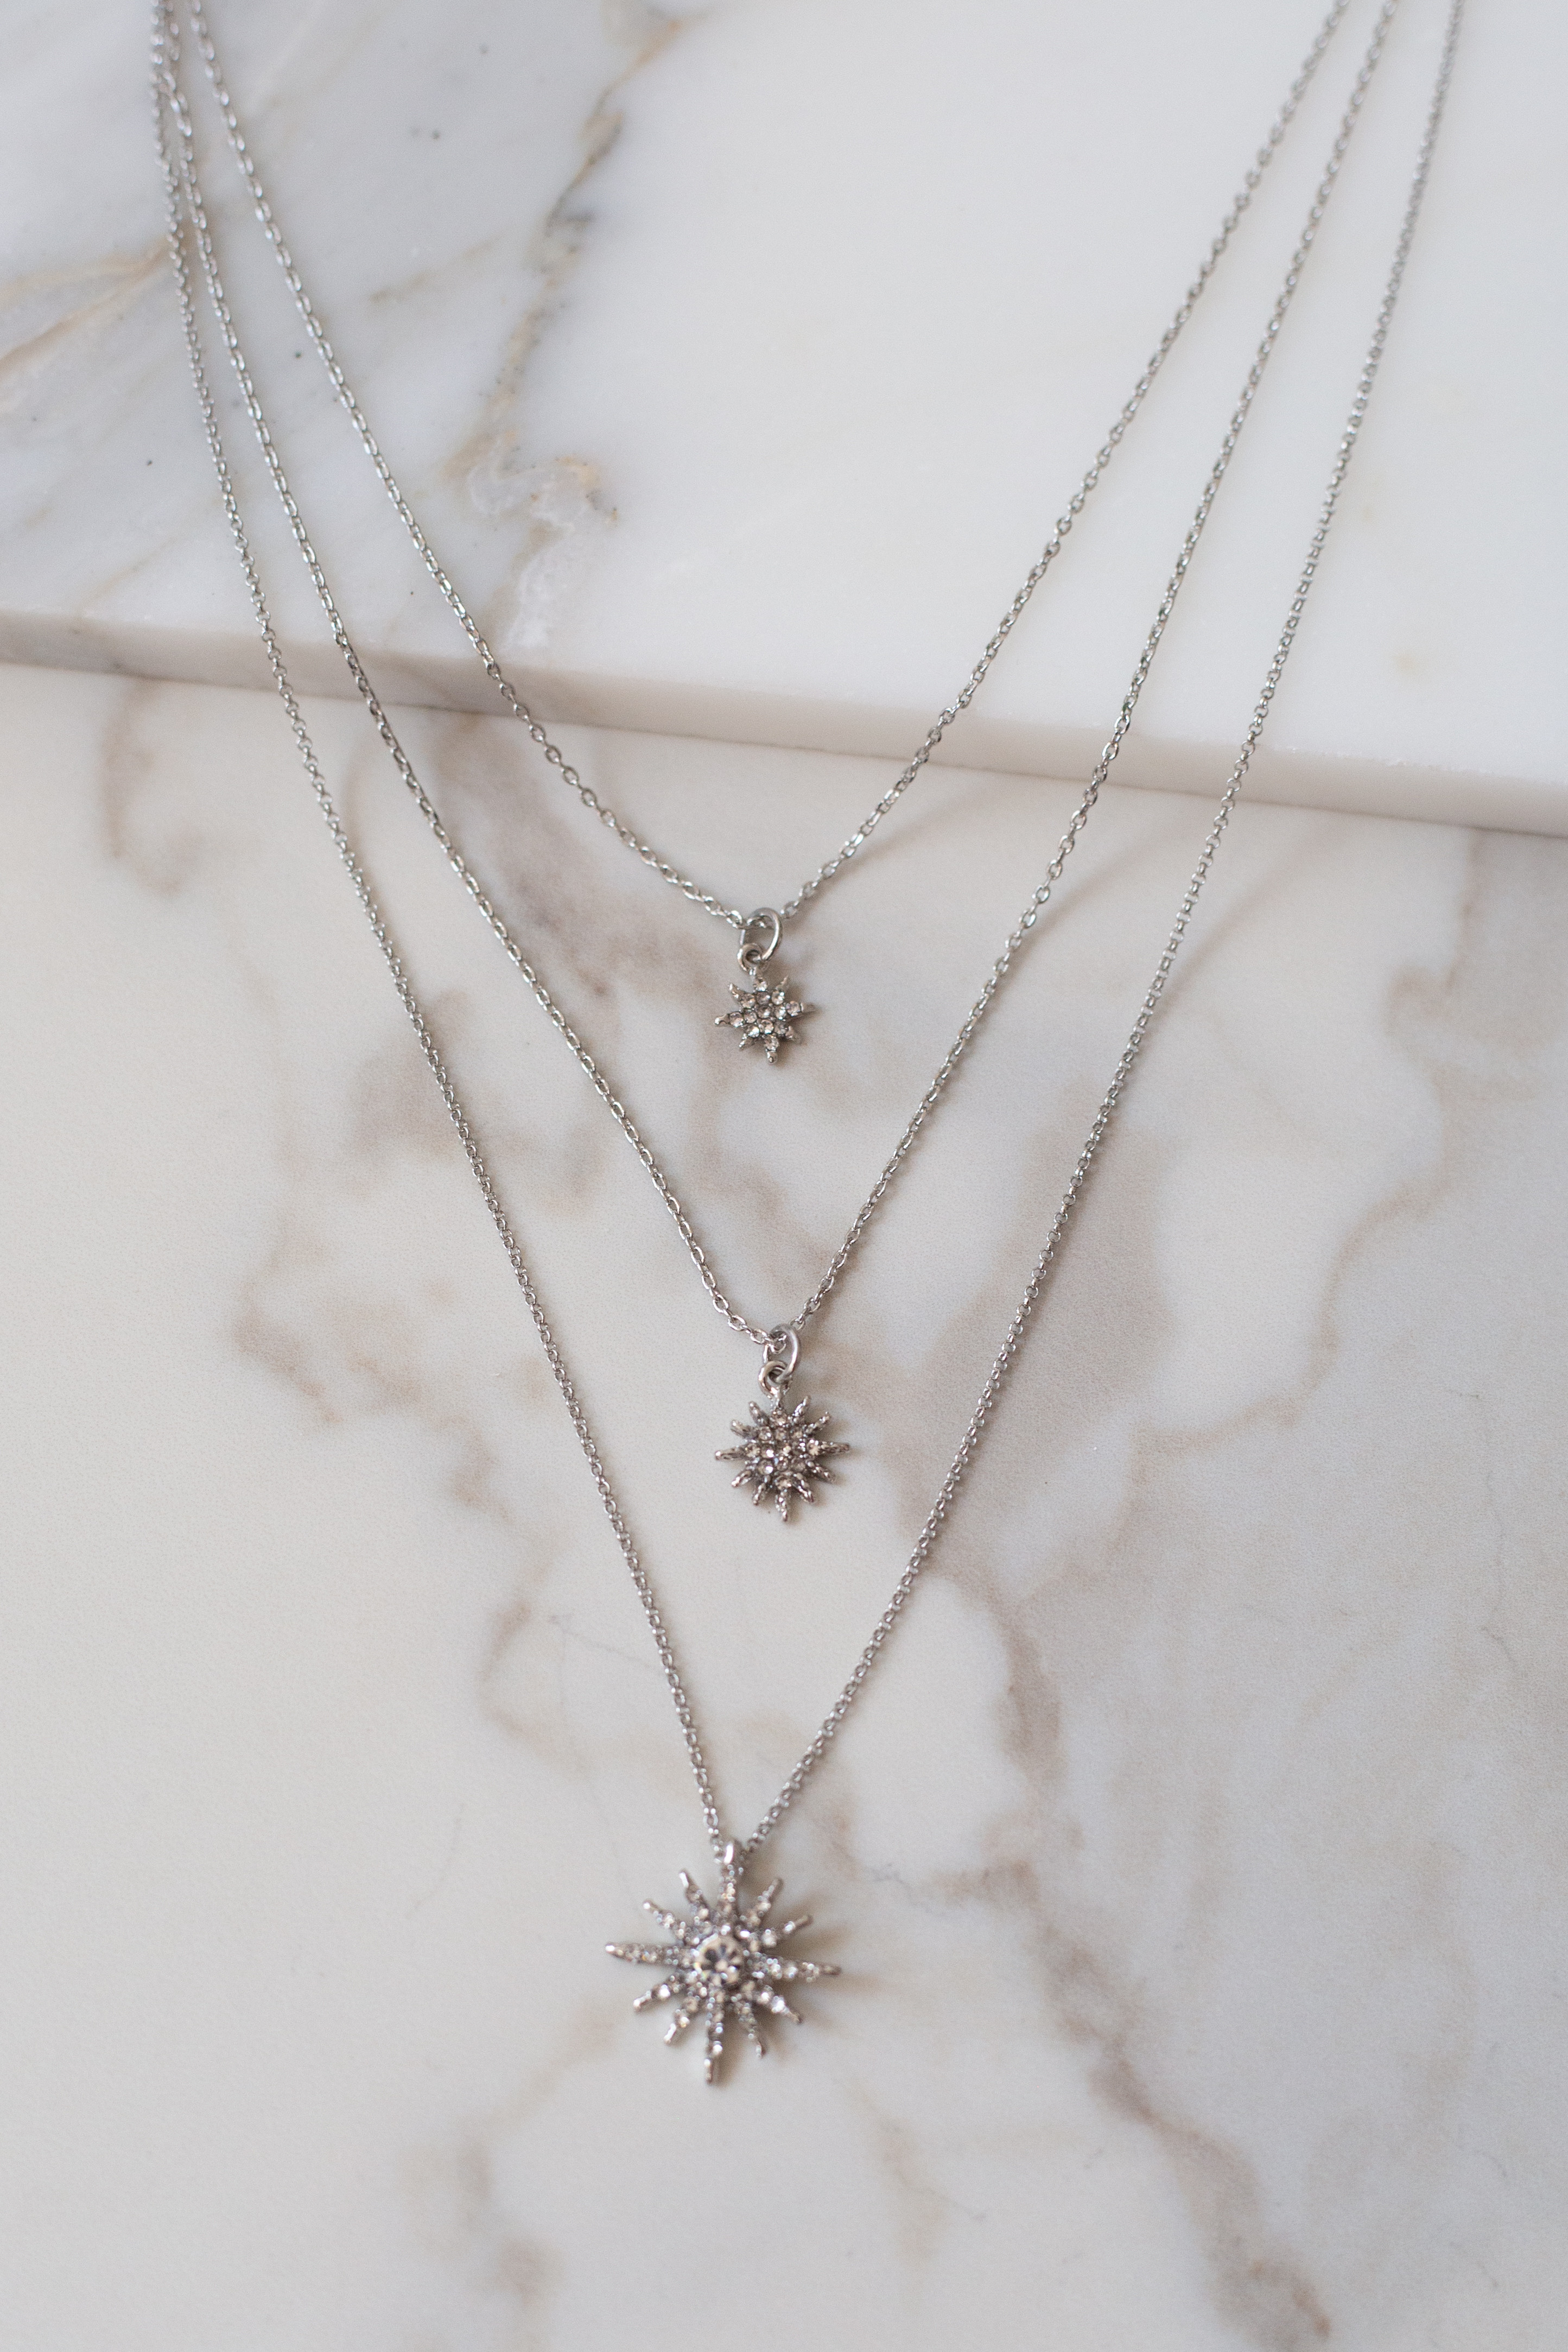 Silver Layered Necklace with Rhinestone Starburst Pendants